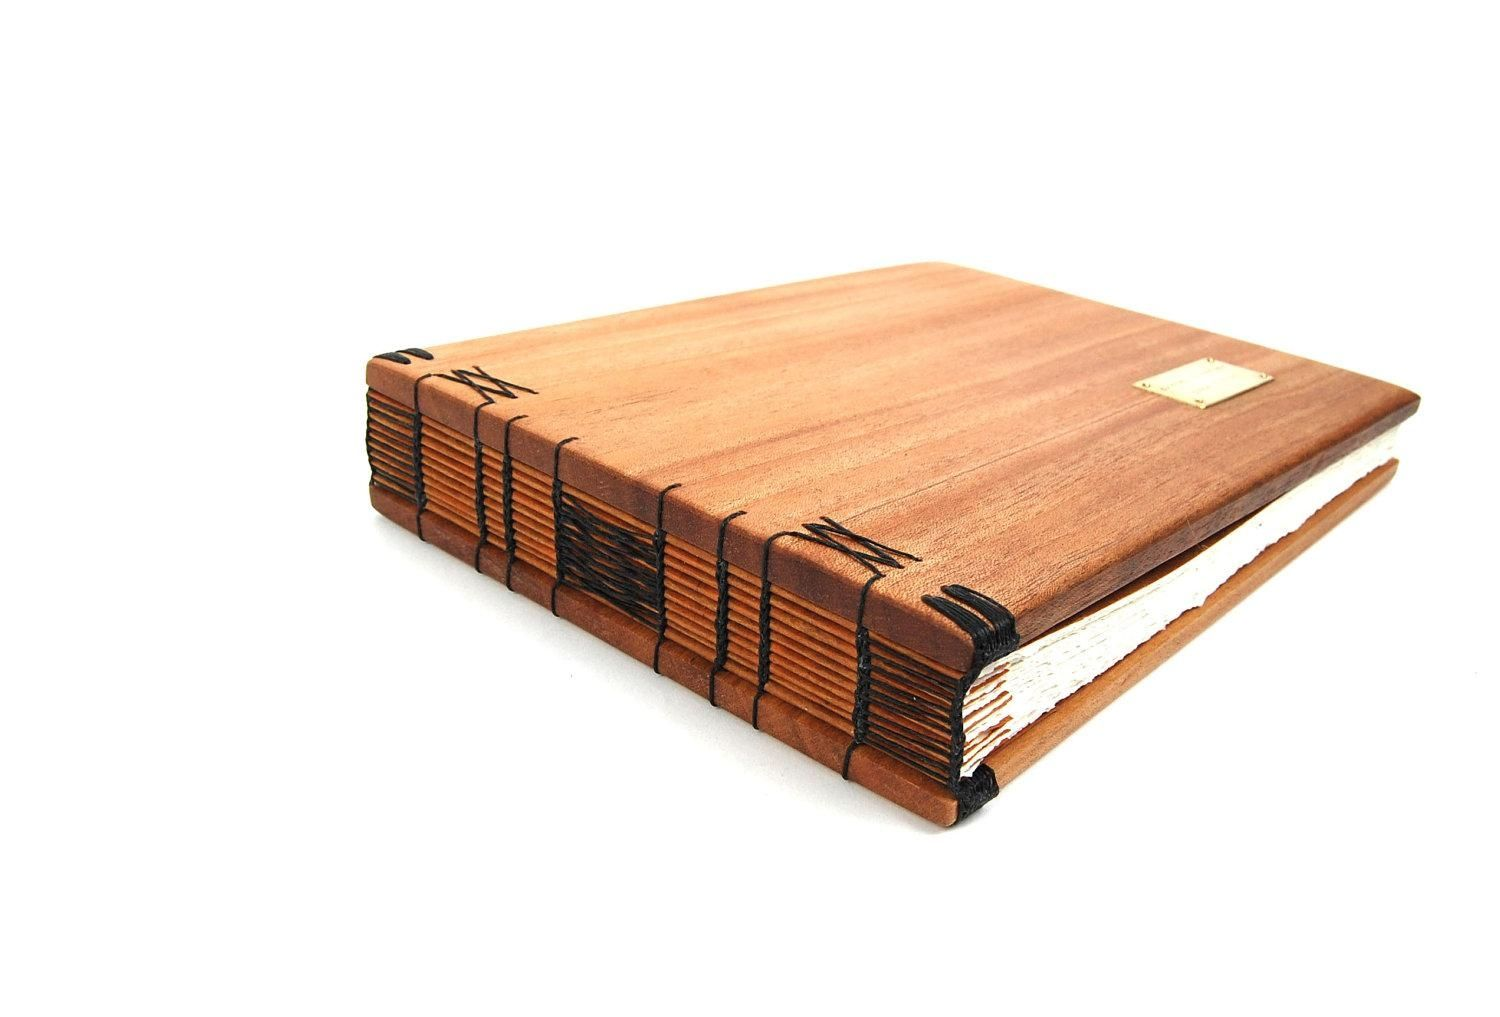 Wood Covered Book : Hand crafted unique guest book with wood covers custom